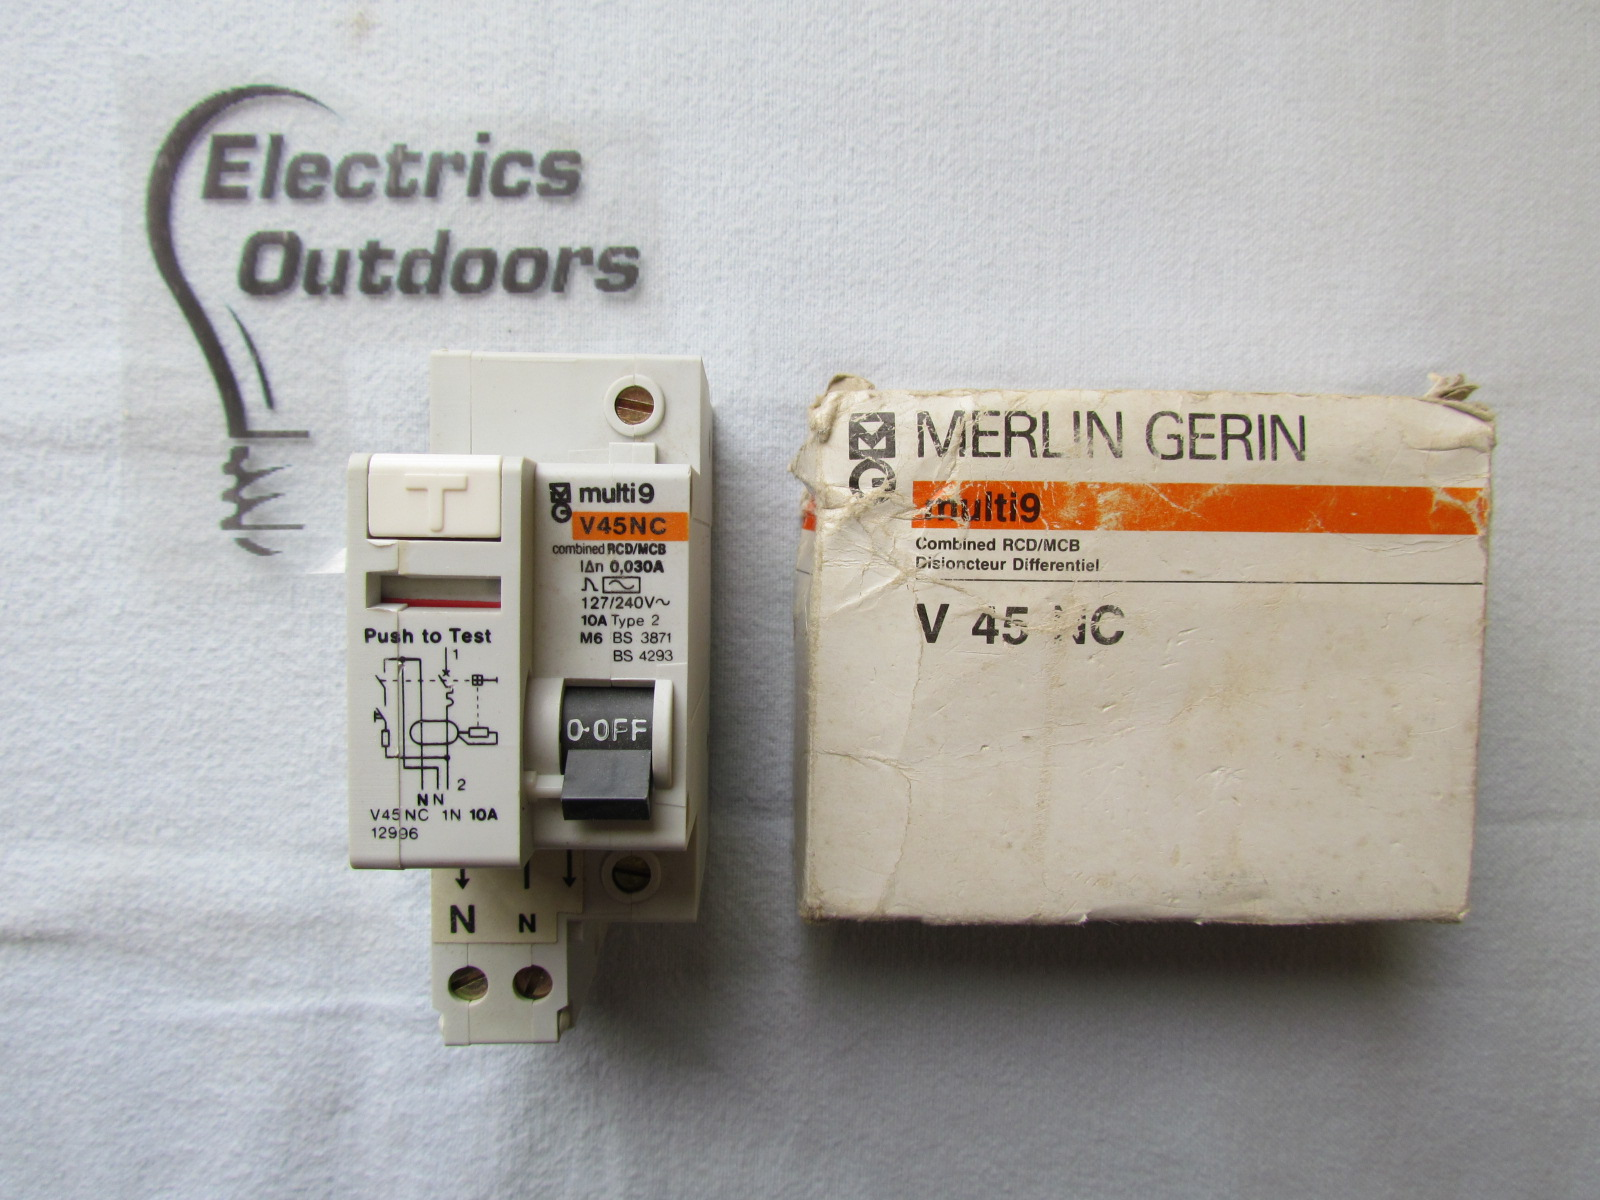 MERLIN GERIN 10 AMP TYPE 2 M6 30 mA DOUBLE POLE RCBO RCD MCB 240V V45NC 12996 2